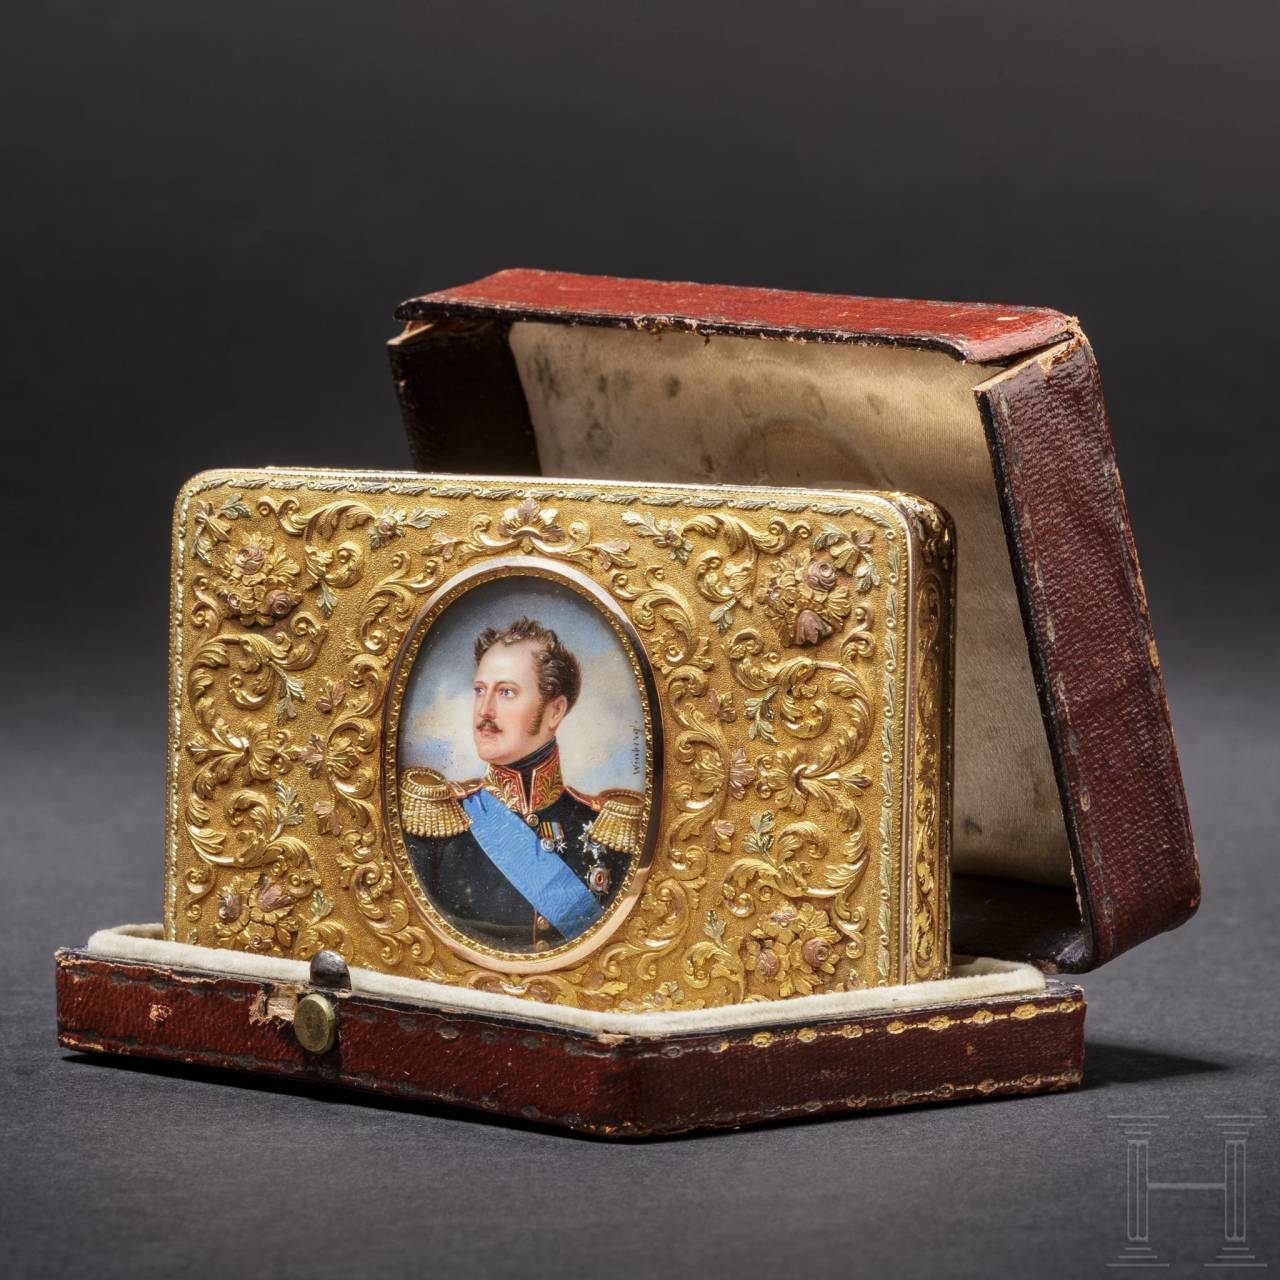 A splendid gold snuffbox with the miniature portrait of Tsar Nicholas I, personal gift from the Tsar, master of miniatures Ivan Winberg (1798 – 1851), Russia, circa 1825/35